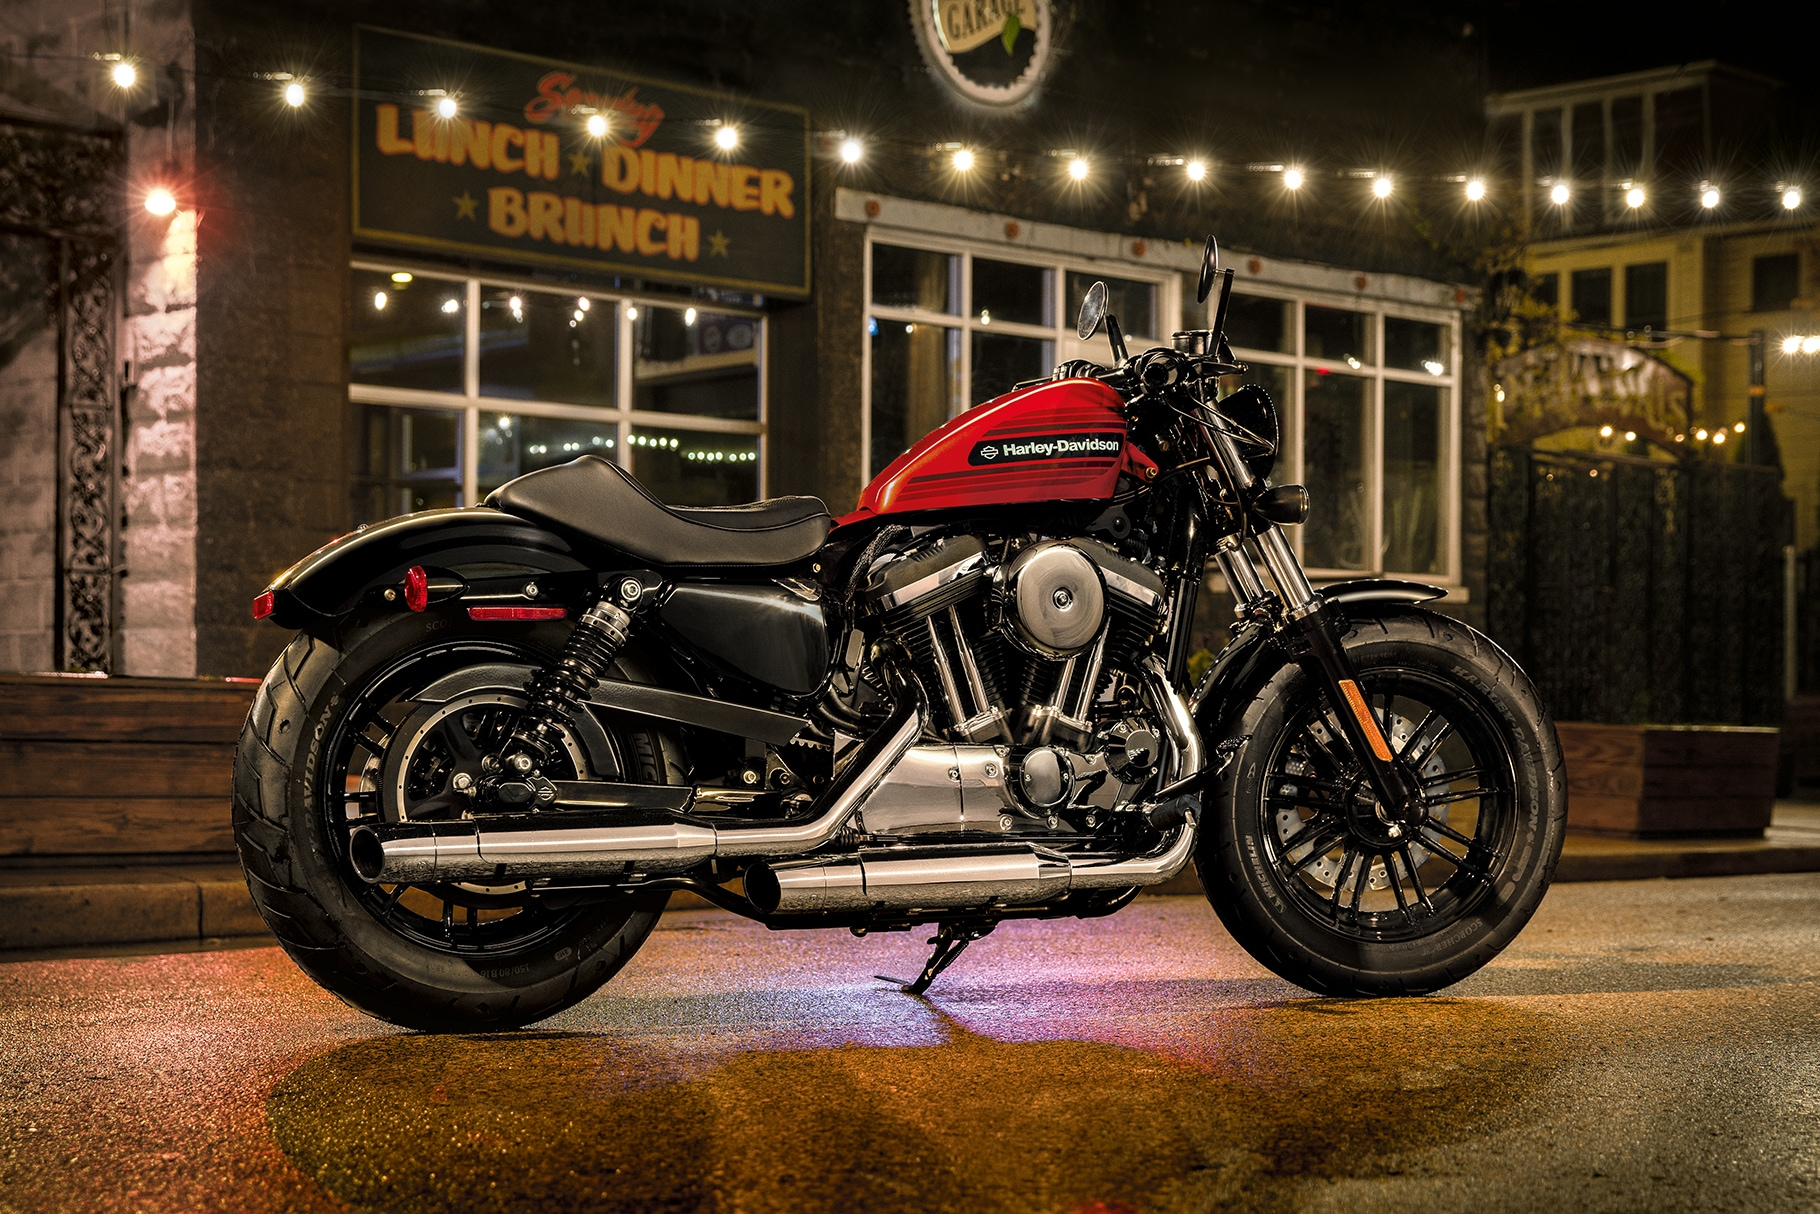 2019 H-D Sportster Forty-Eight Special motorcycle Parked in Front of Restaurant